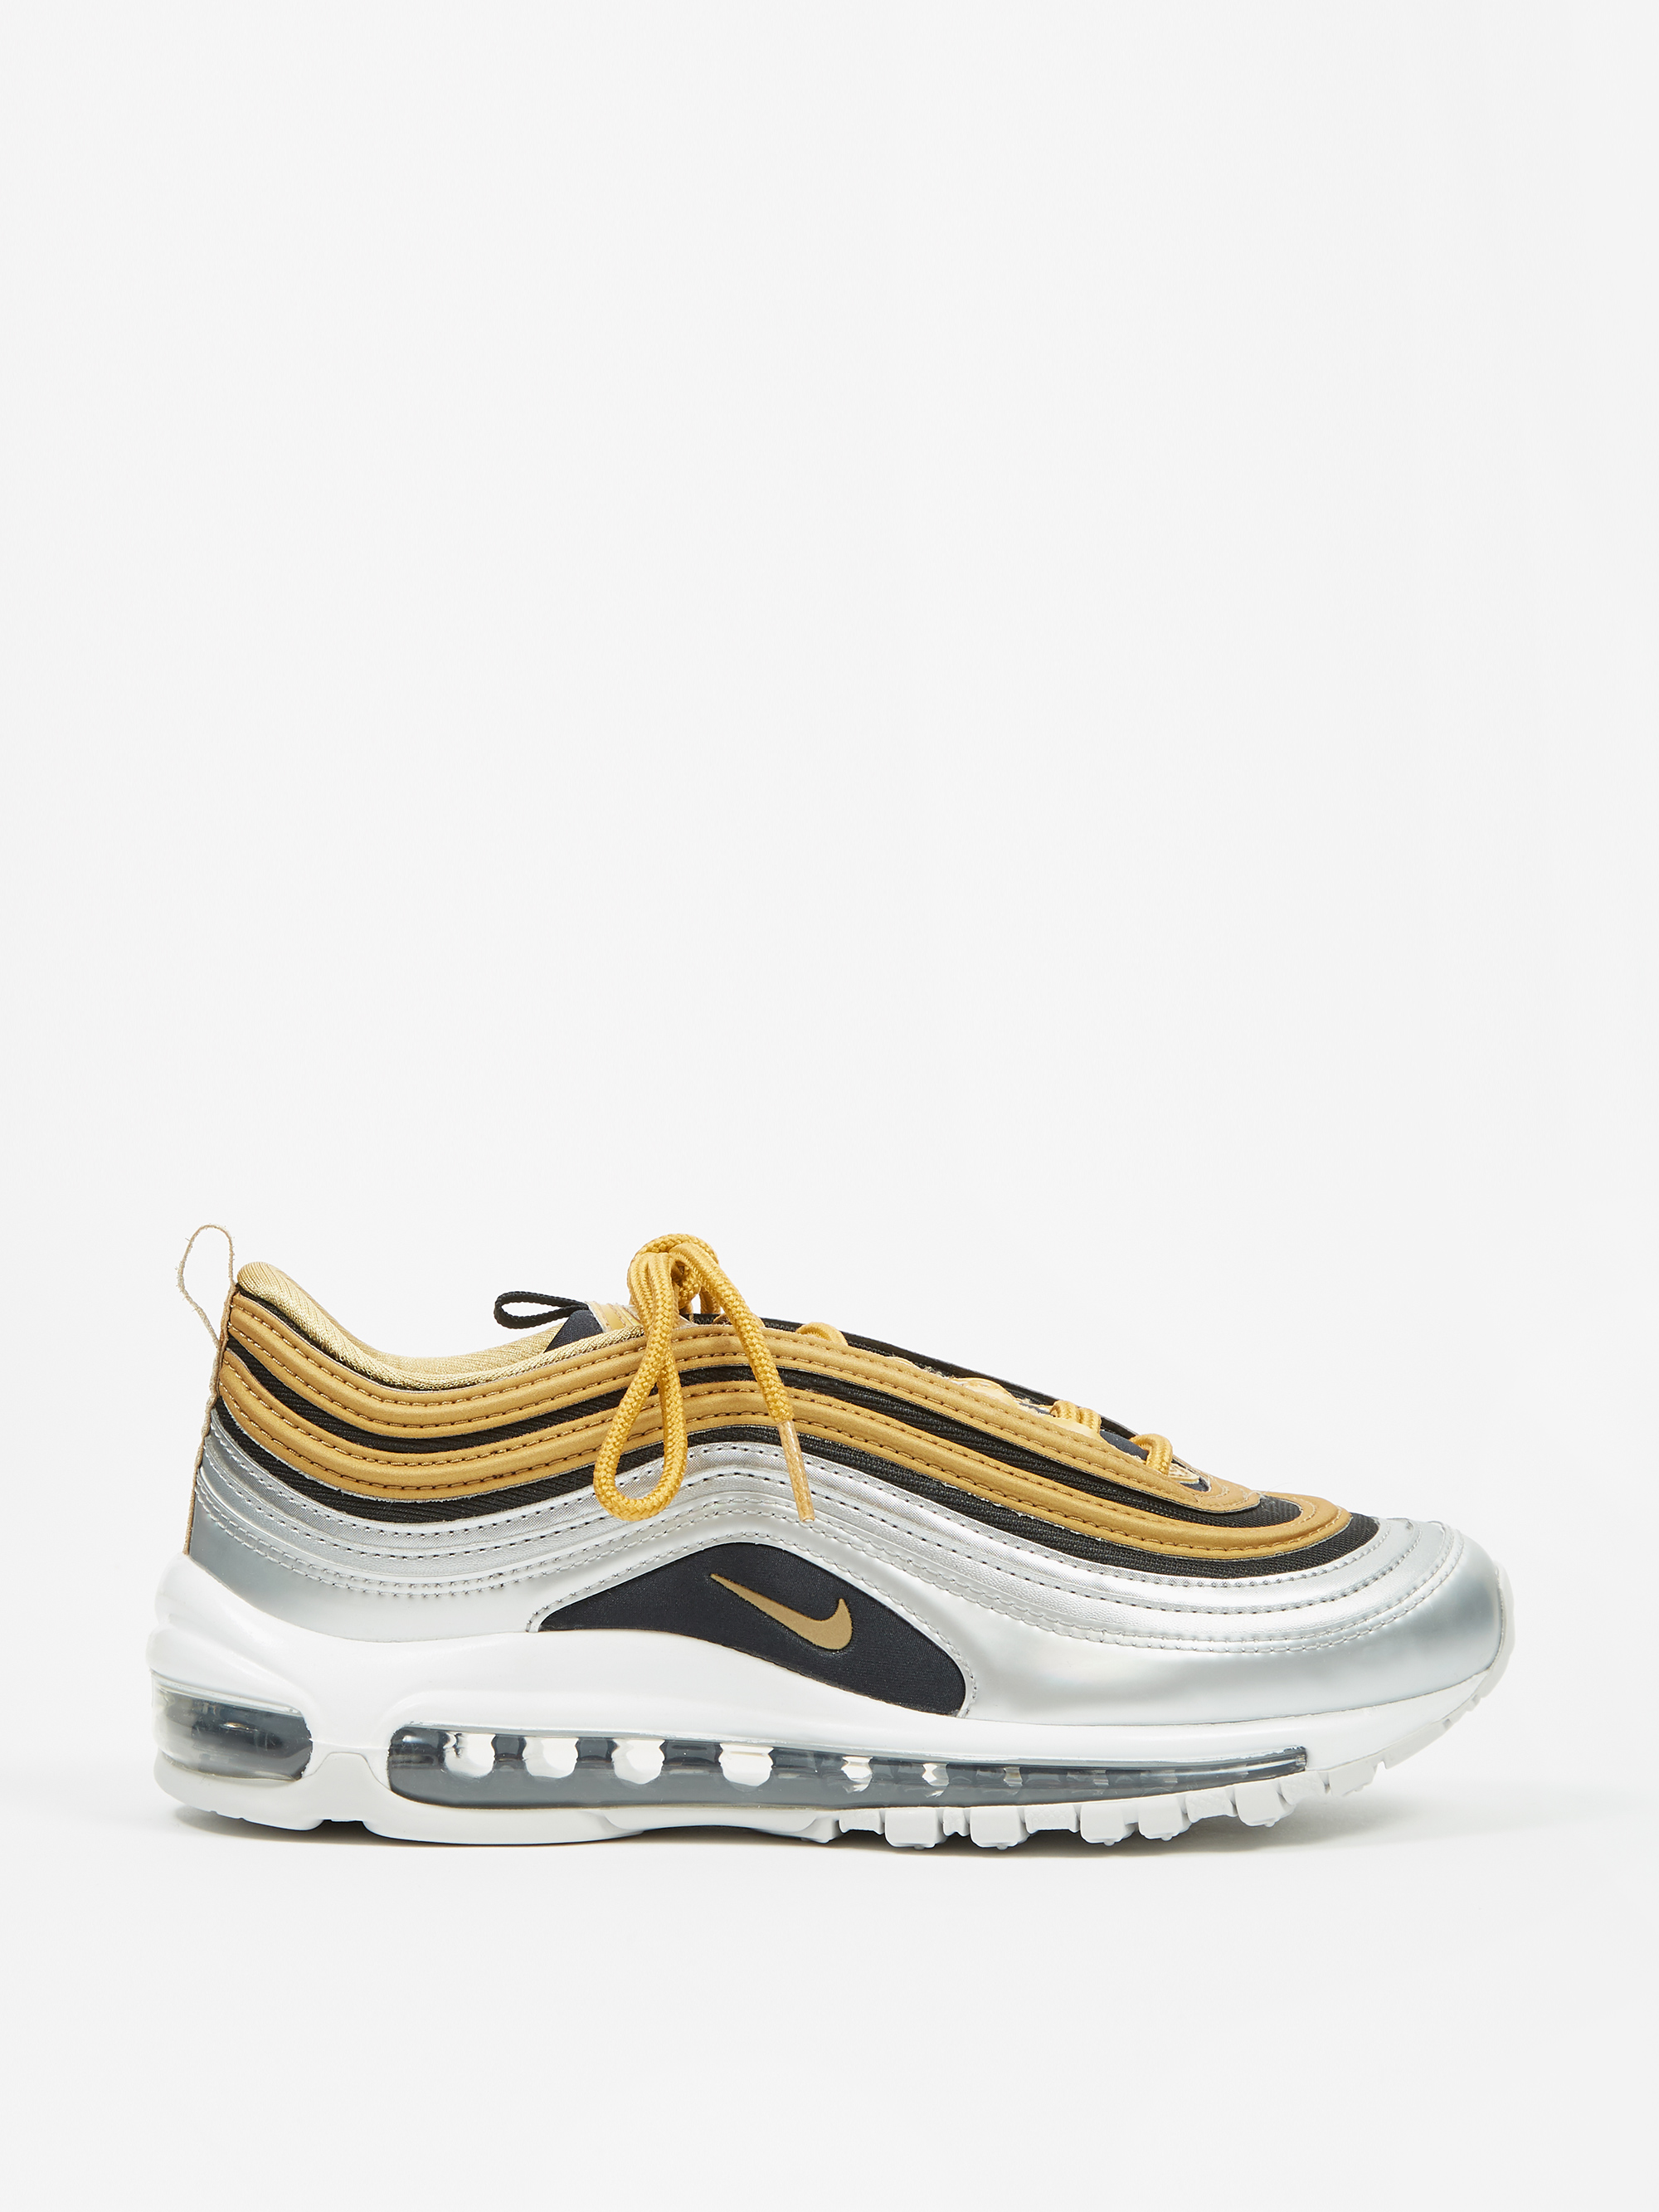 new product c35d2 21528 Nike Air Max 97 Special Edition - Metallic Gold